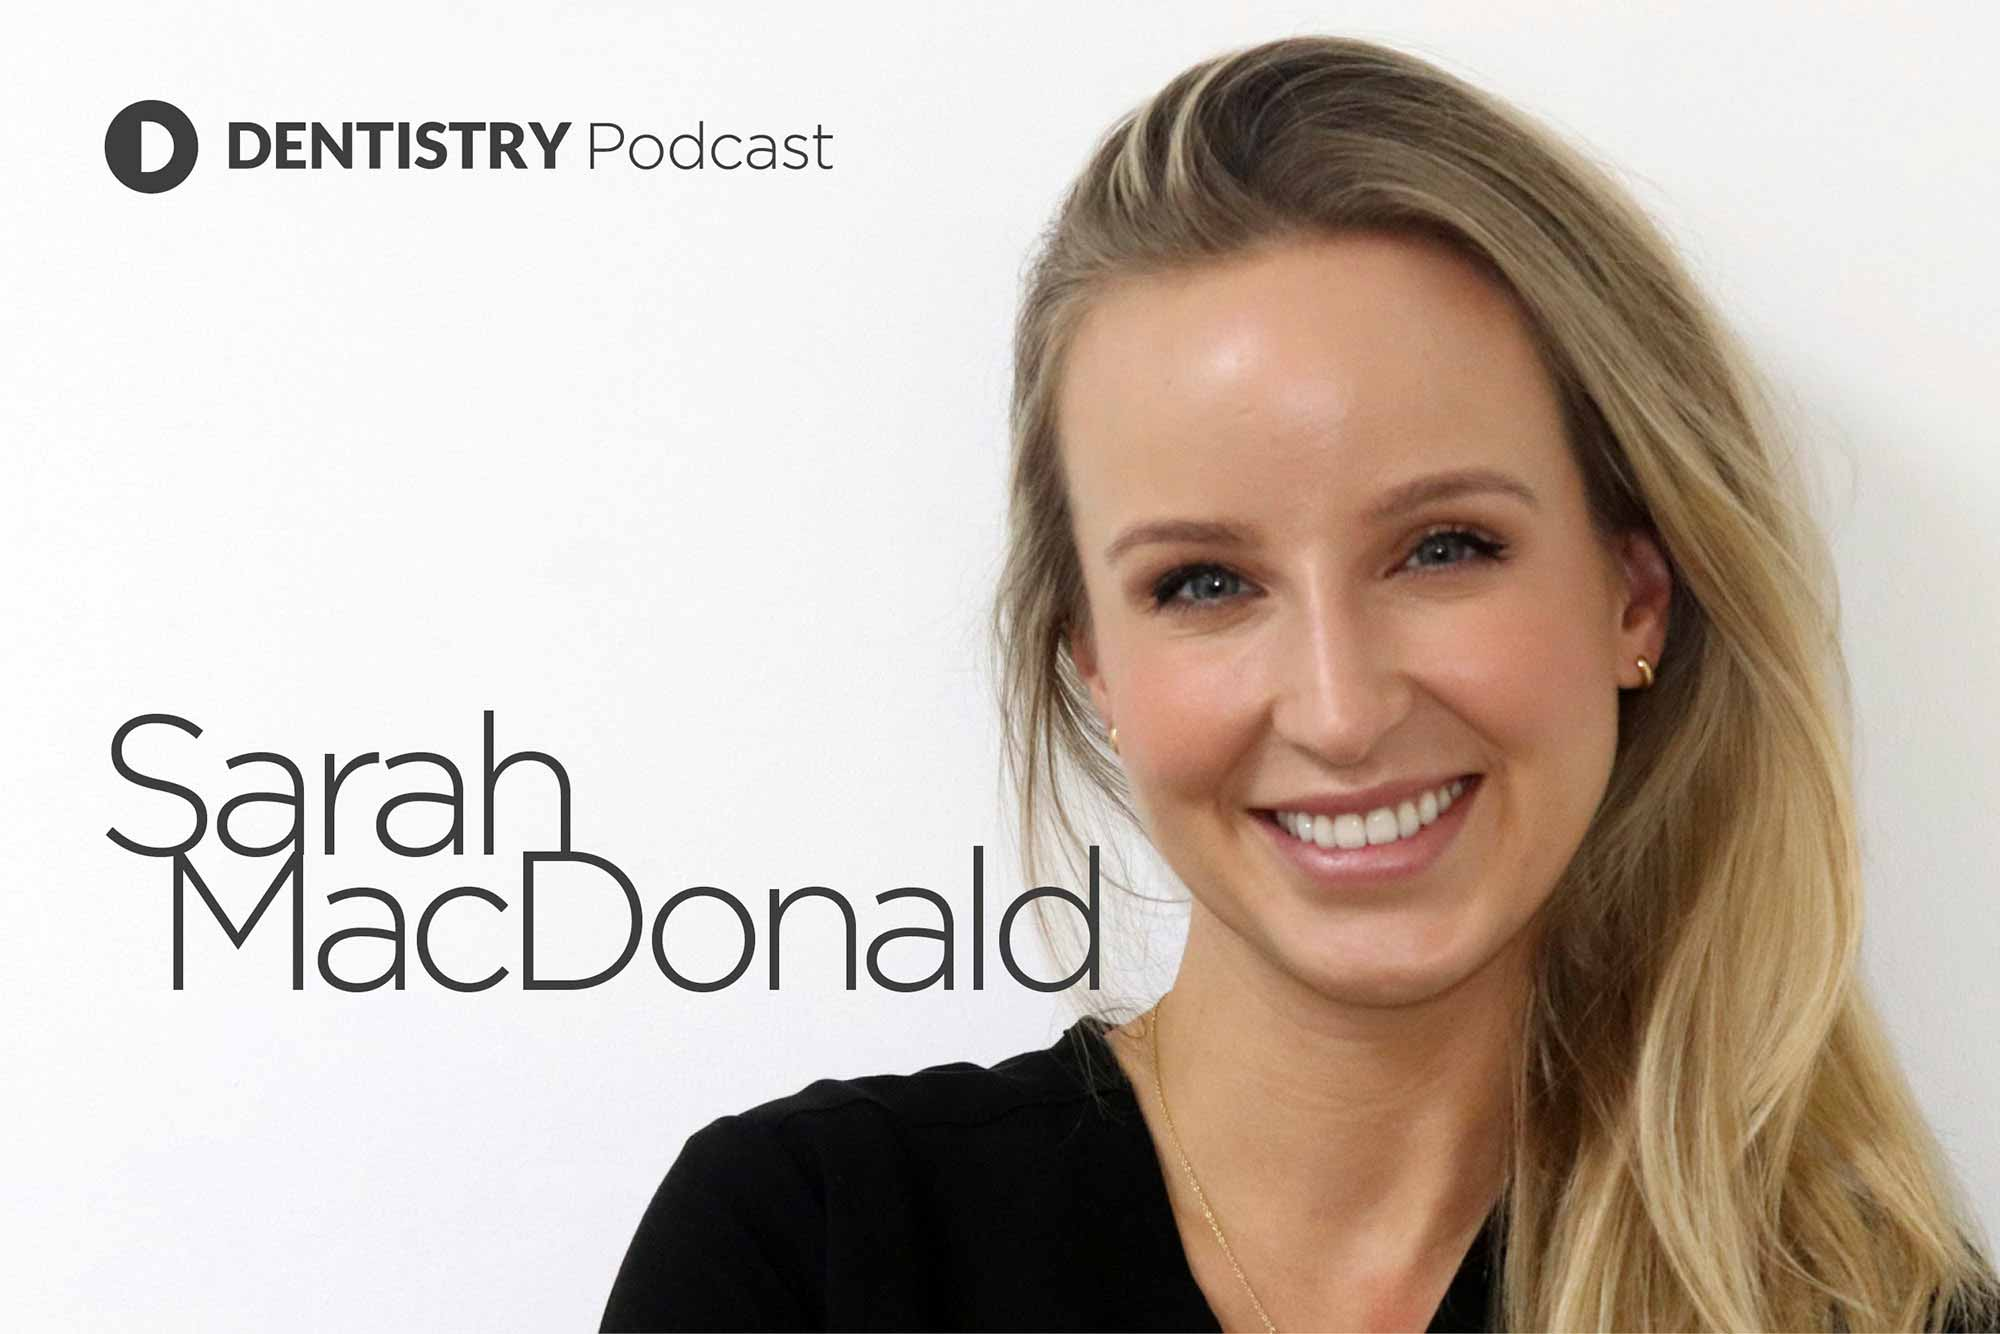 Sarah MacDonald chats to Dentistry Online about getting back to work, the future of orthodontic therapy and climbing Mount Kilimanjaro